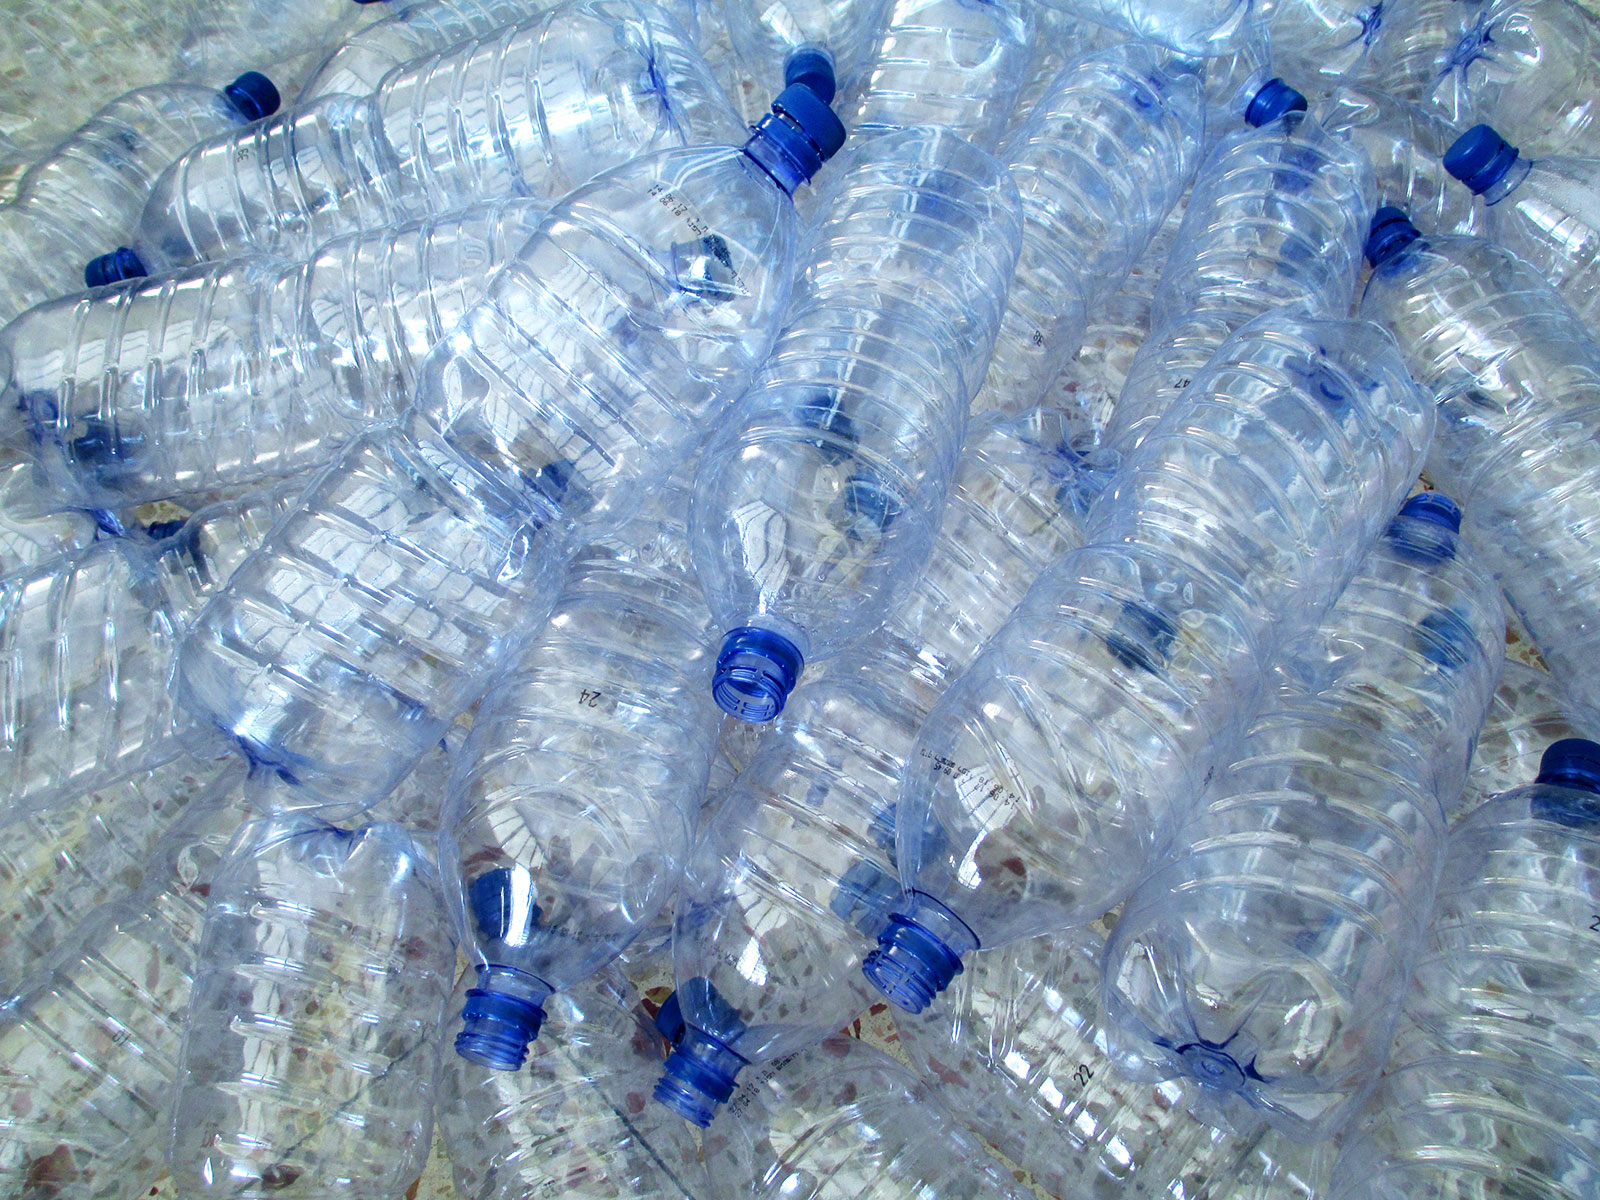 plastic water bottles in national parks